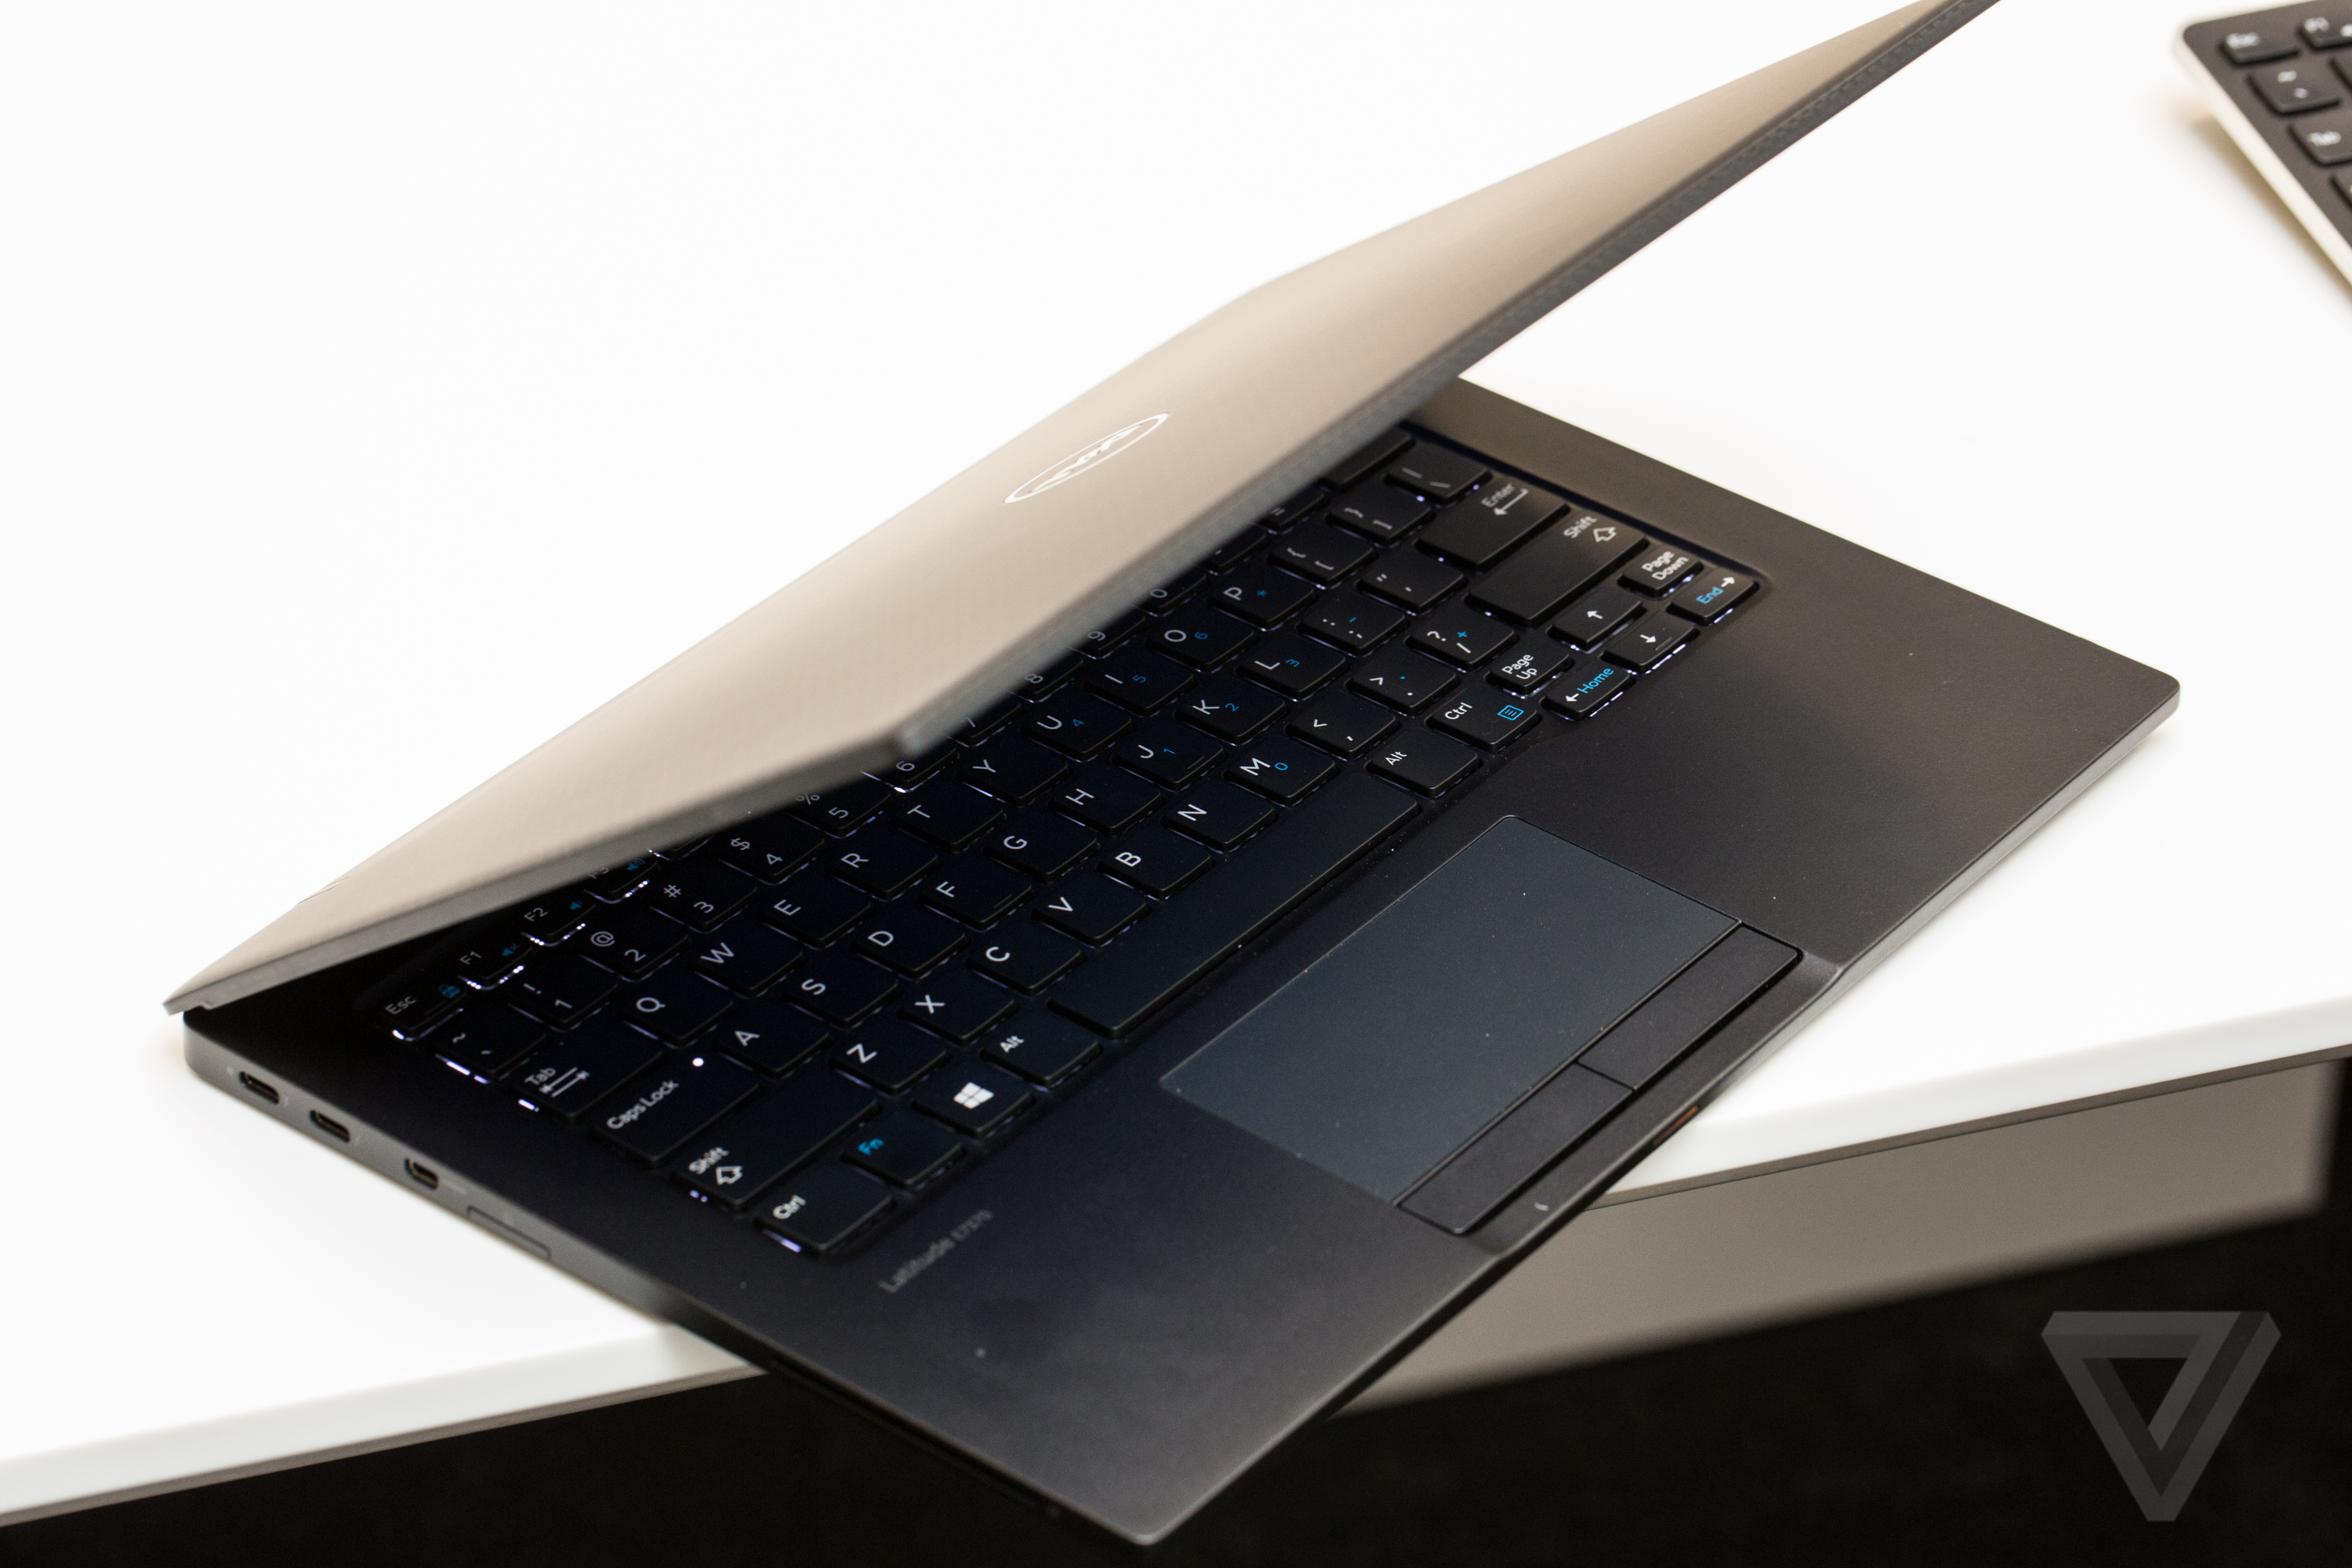 Dell's new Latitude 13 is a business version of the best Windows